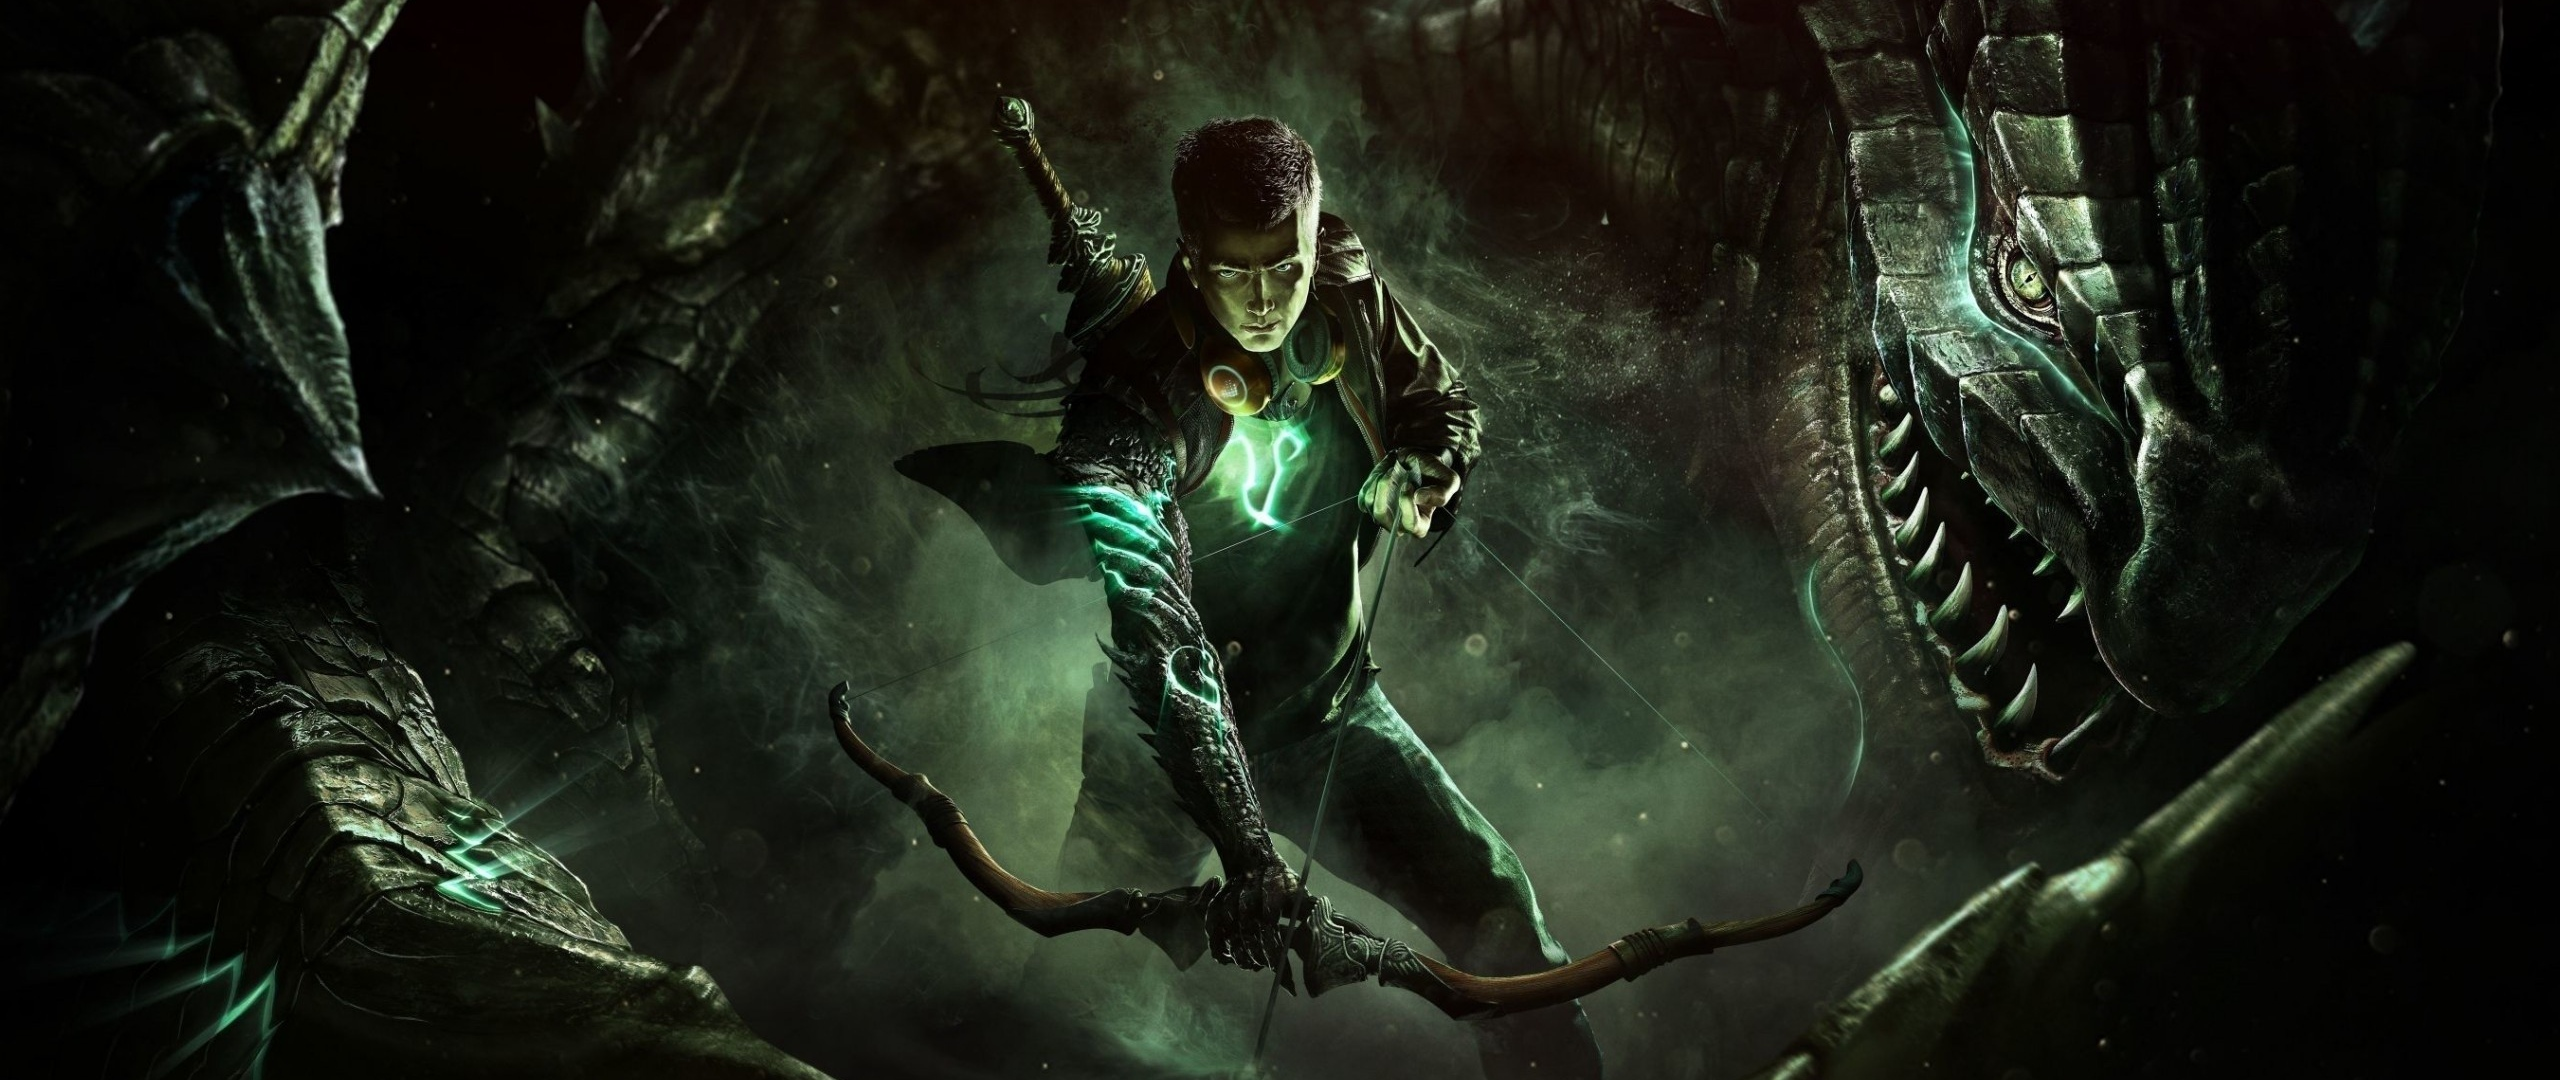 HD Background Scalebound Game Character Platinum Games 2560x1080